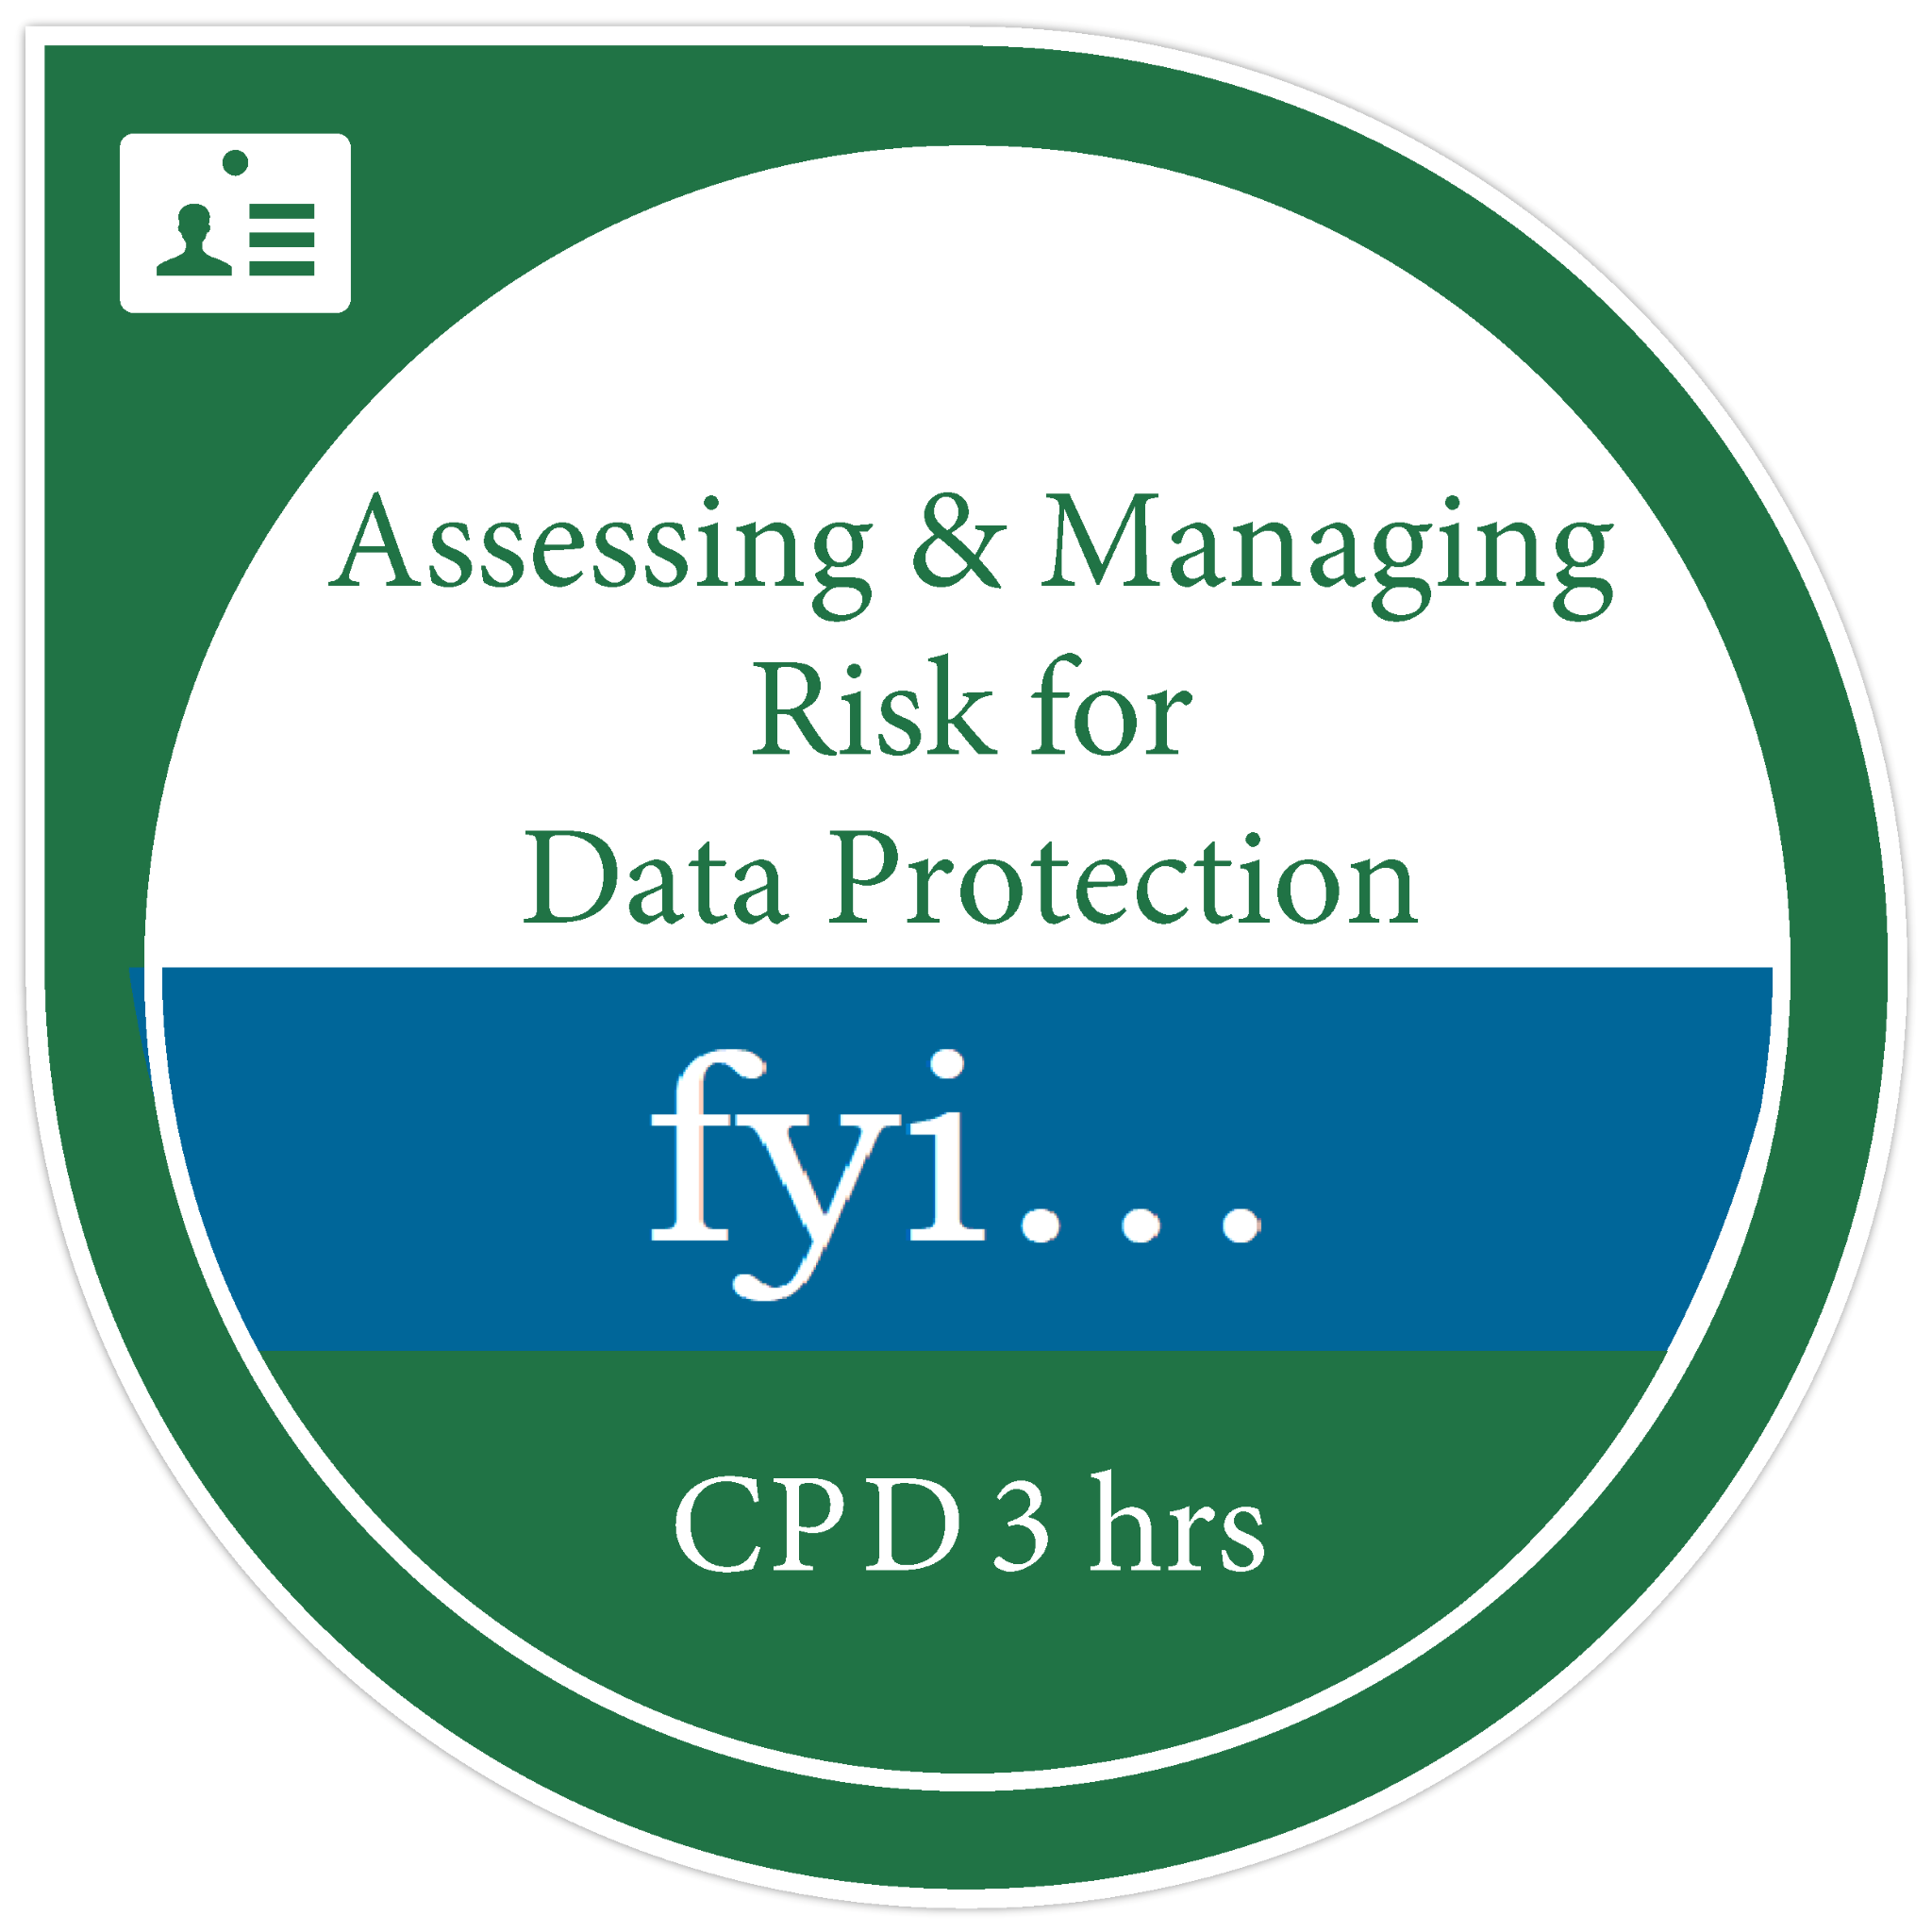 Assessing & Managing Risk for Data Protection